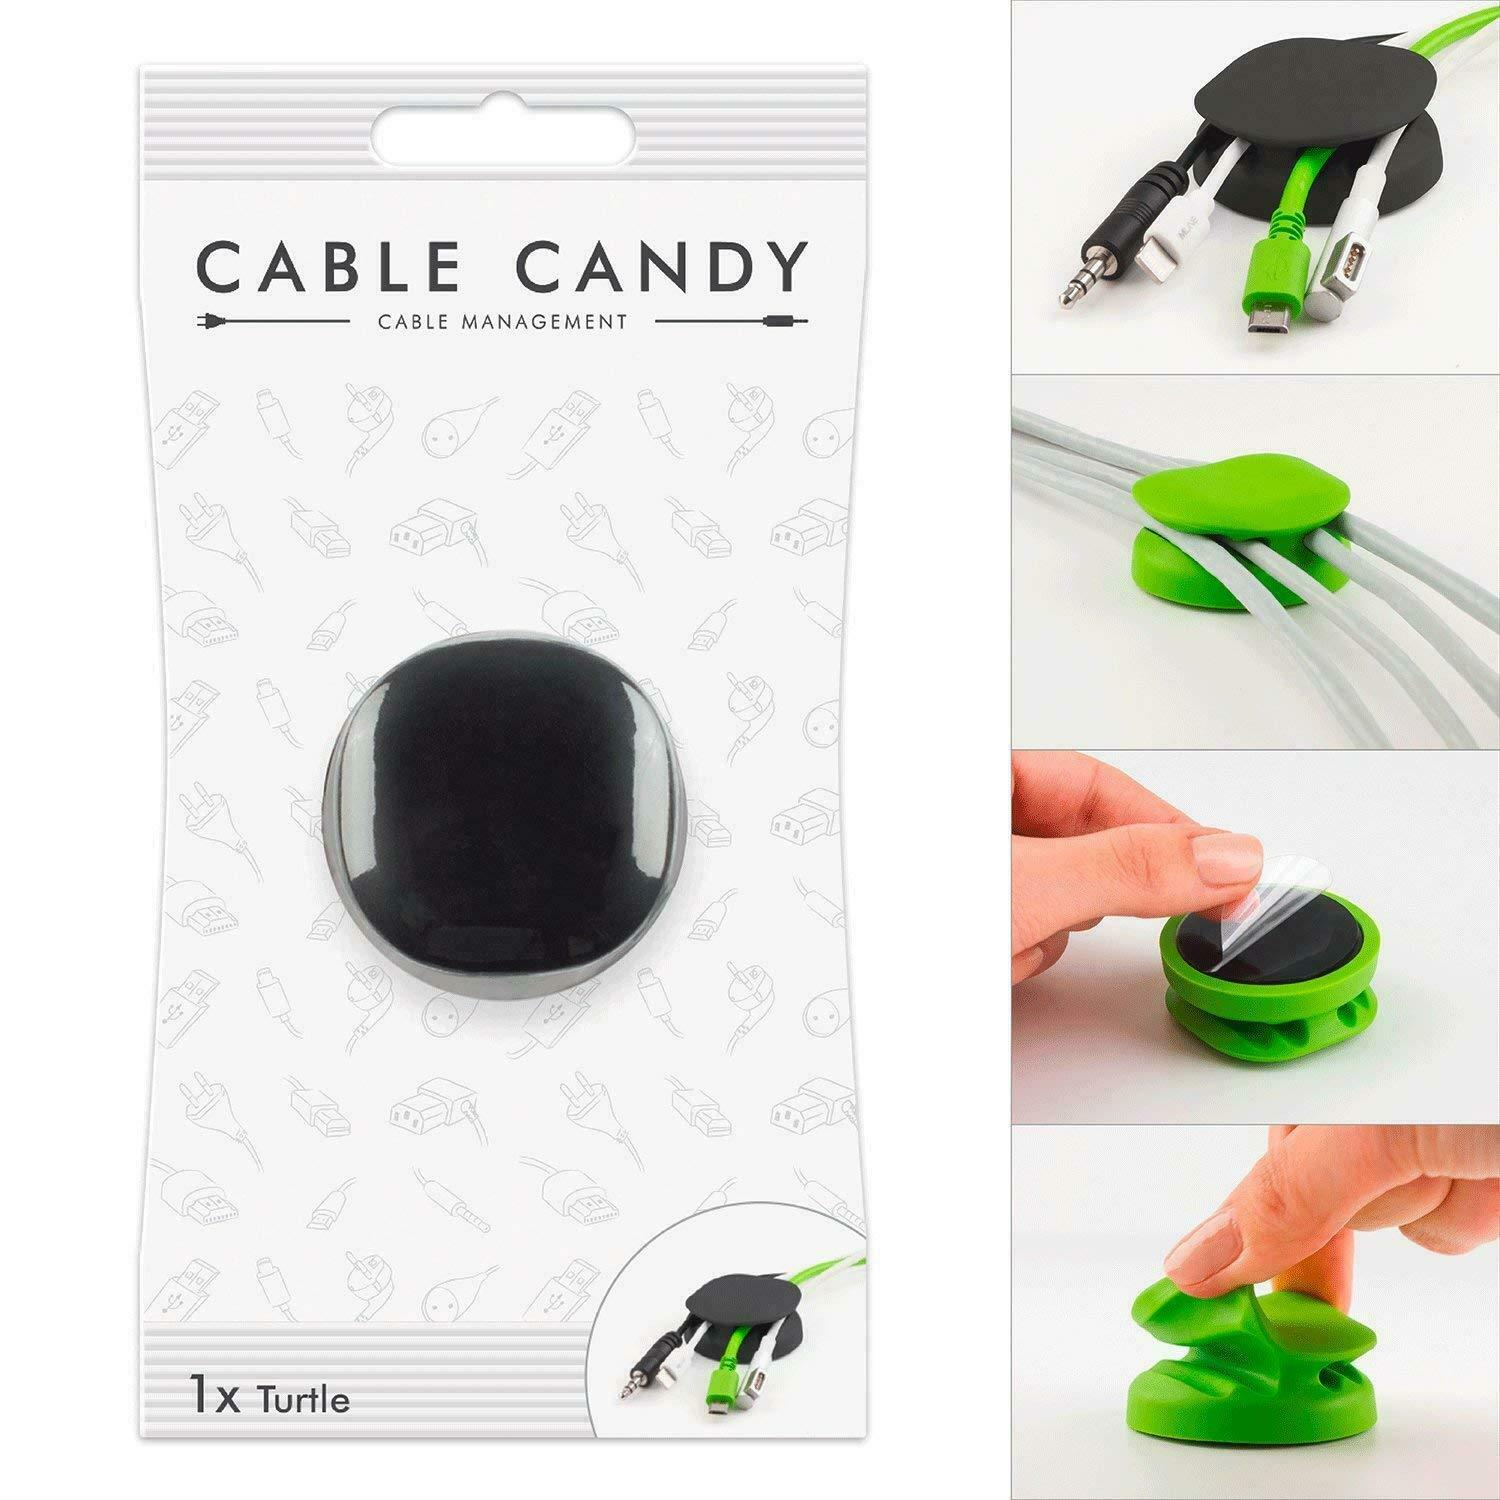 Cable Candy Cable Holder and Cable Guide Organizer For Untangled Wires - Black